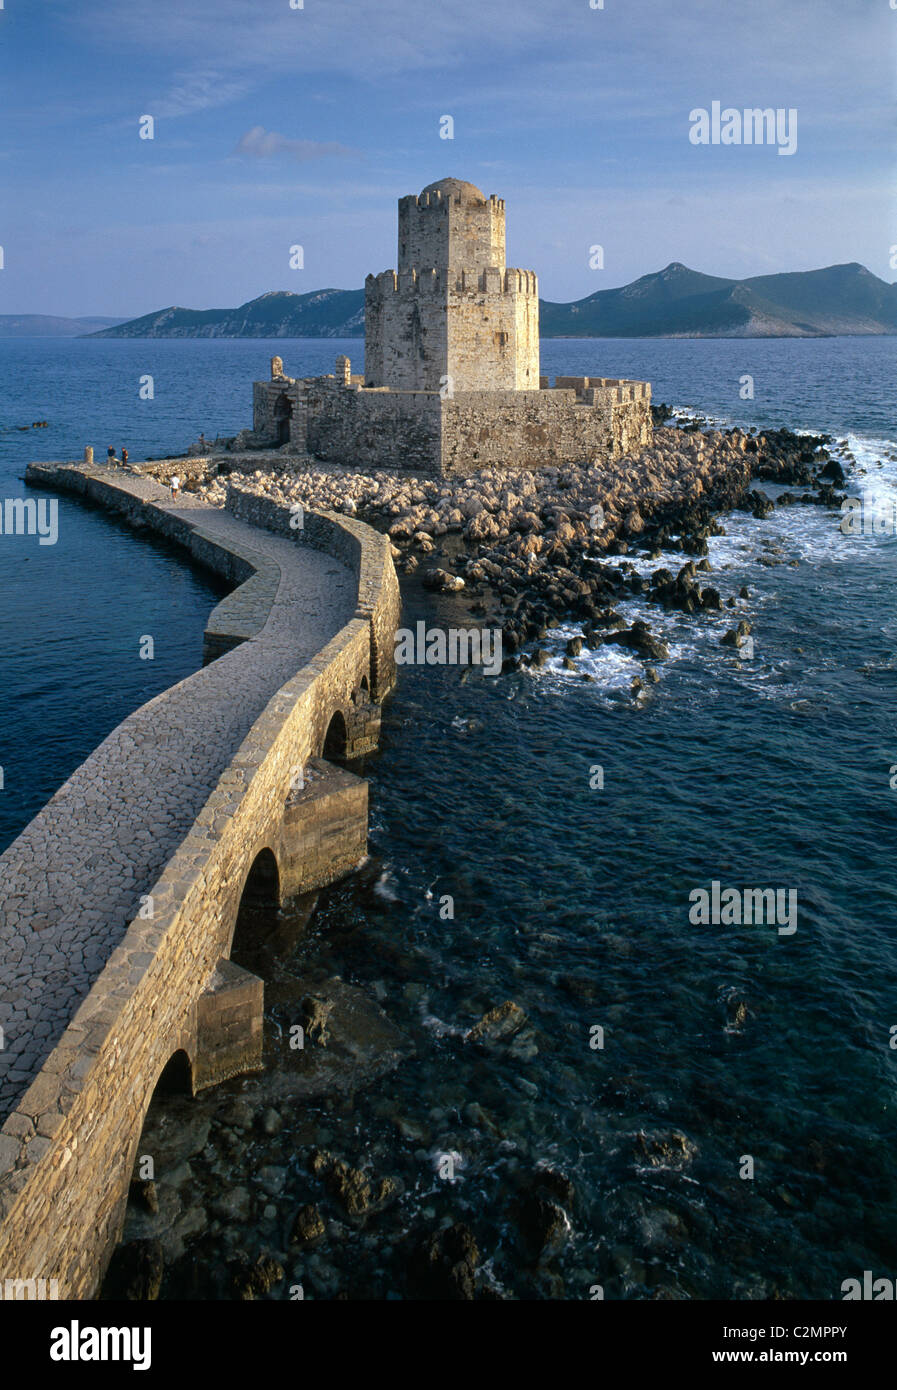 Bourtzi Islet and Tower Methoni Peloponnese, Greece - Stock Image